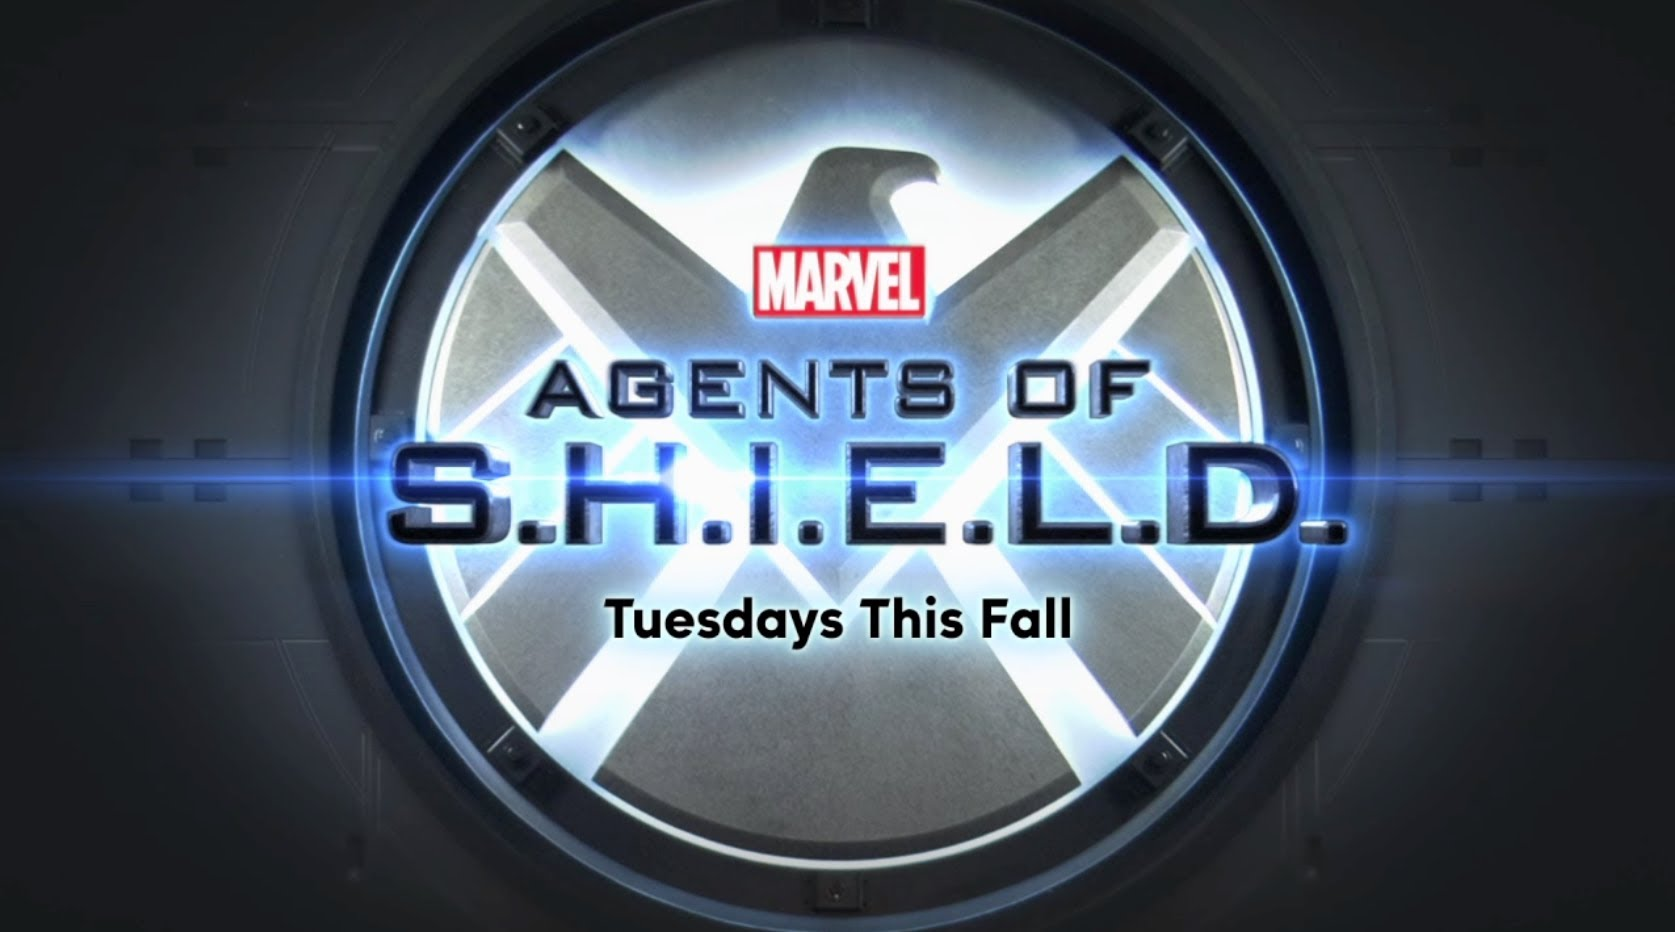 Marvel's Agents of S.H.I.E.L.D. Television Show Gets a Full-Length Trailer & Will Air This Fall